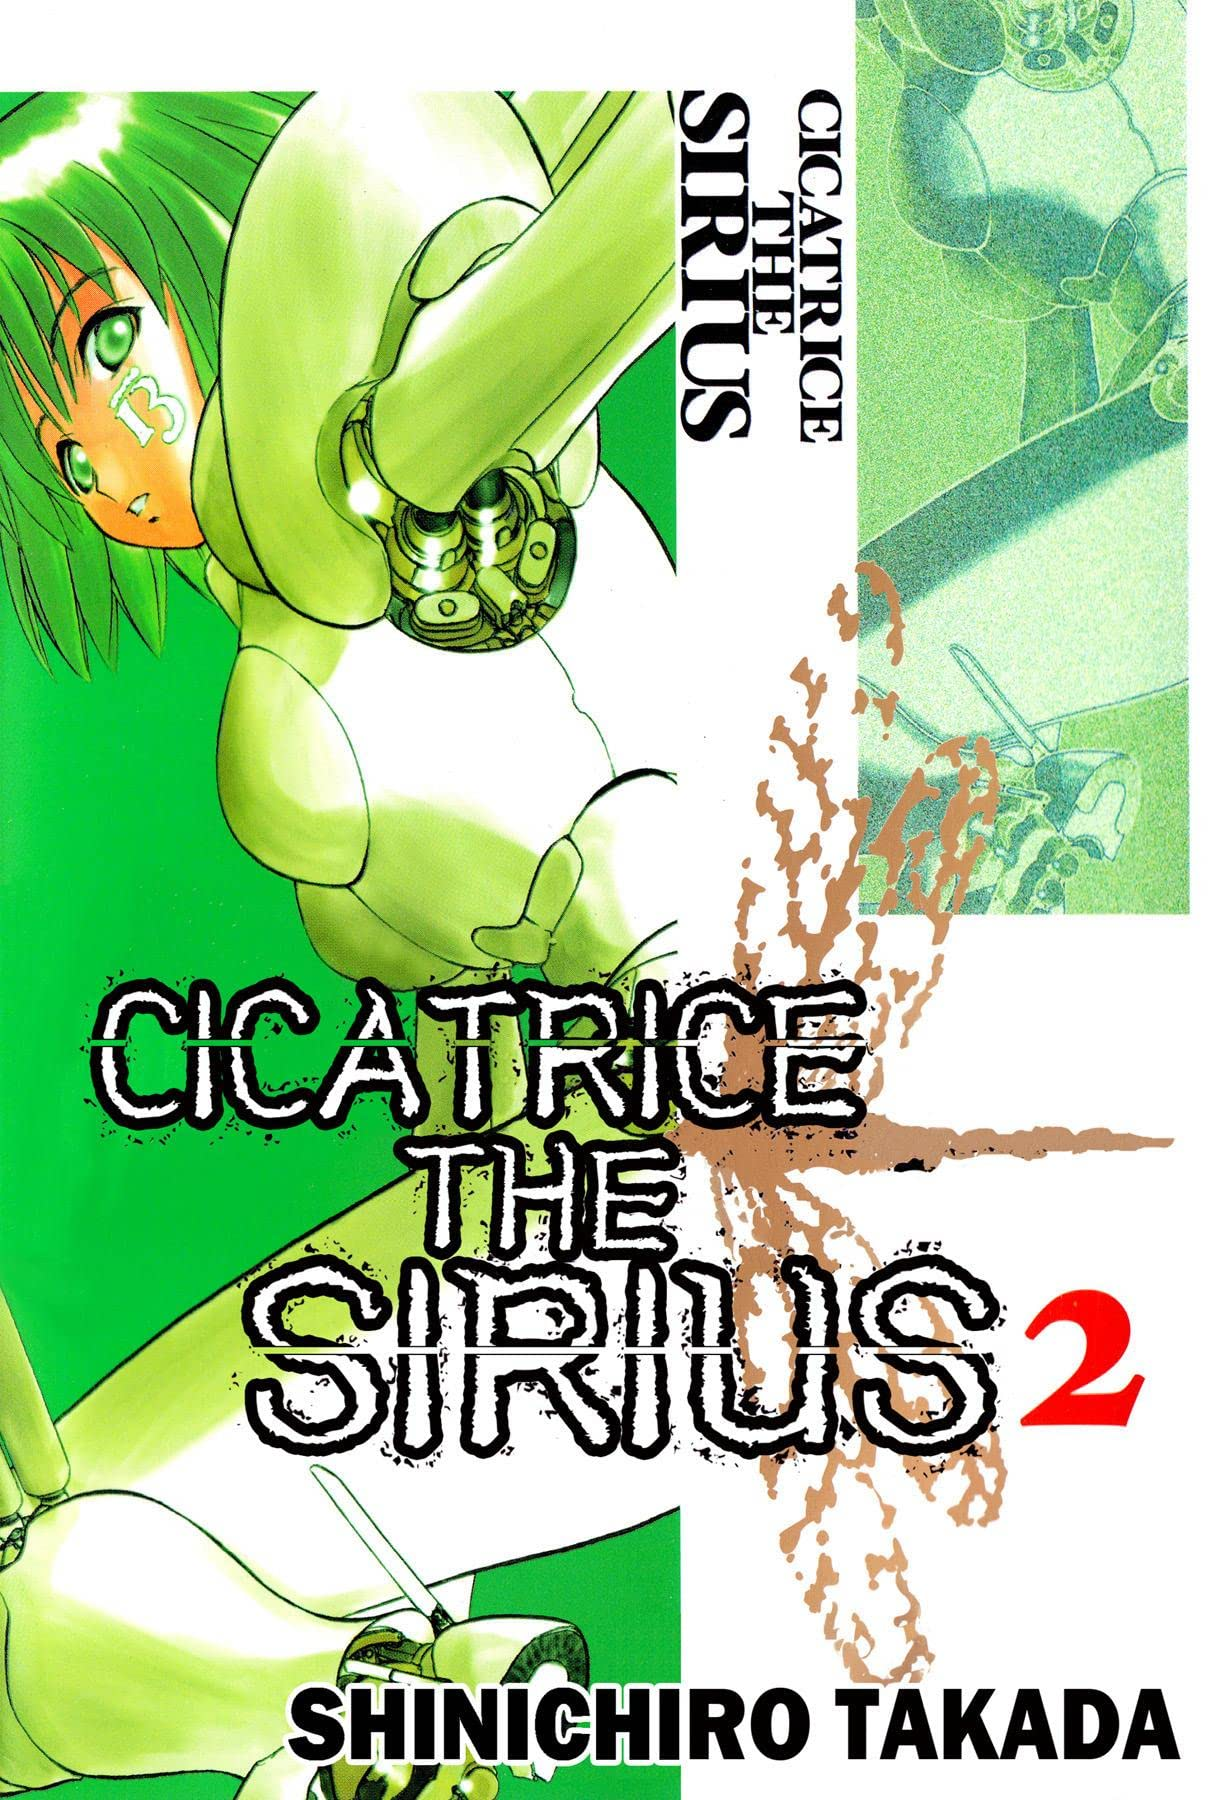 CICATRICE THE SIRIUS Vol. 2